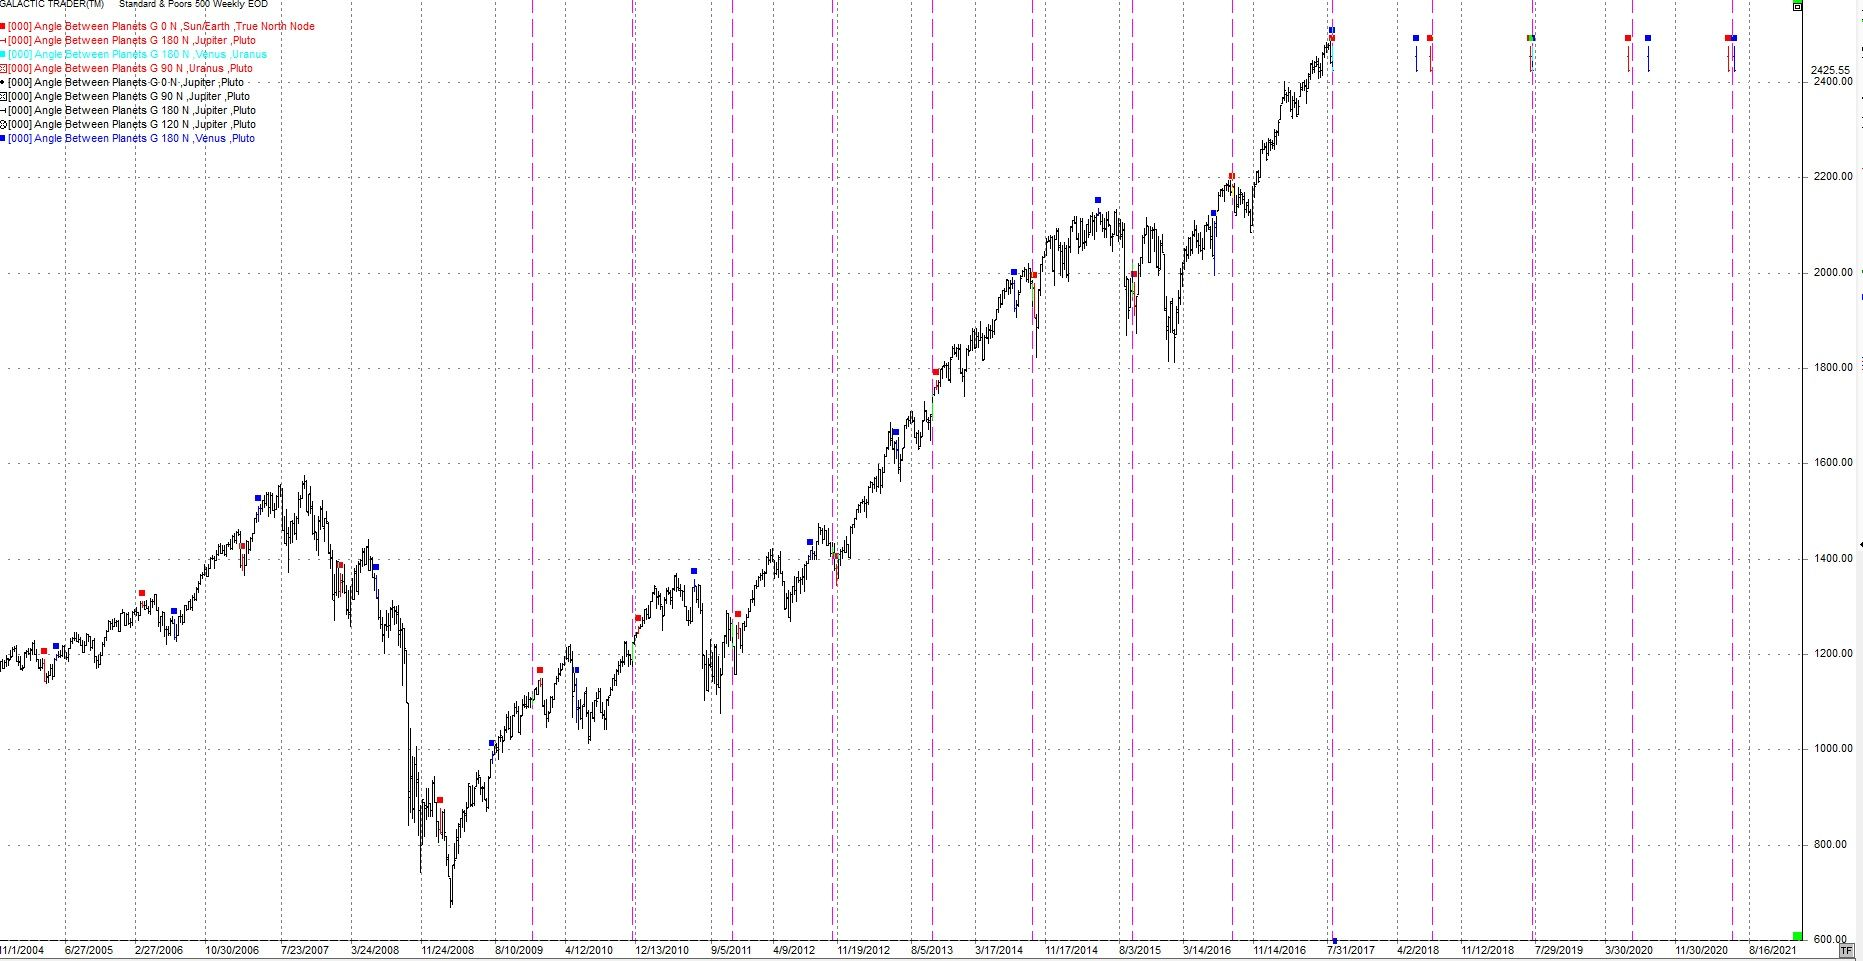 SP500 Down to a Trough